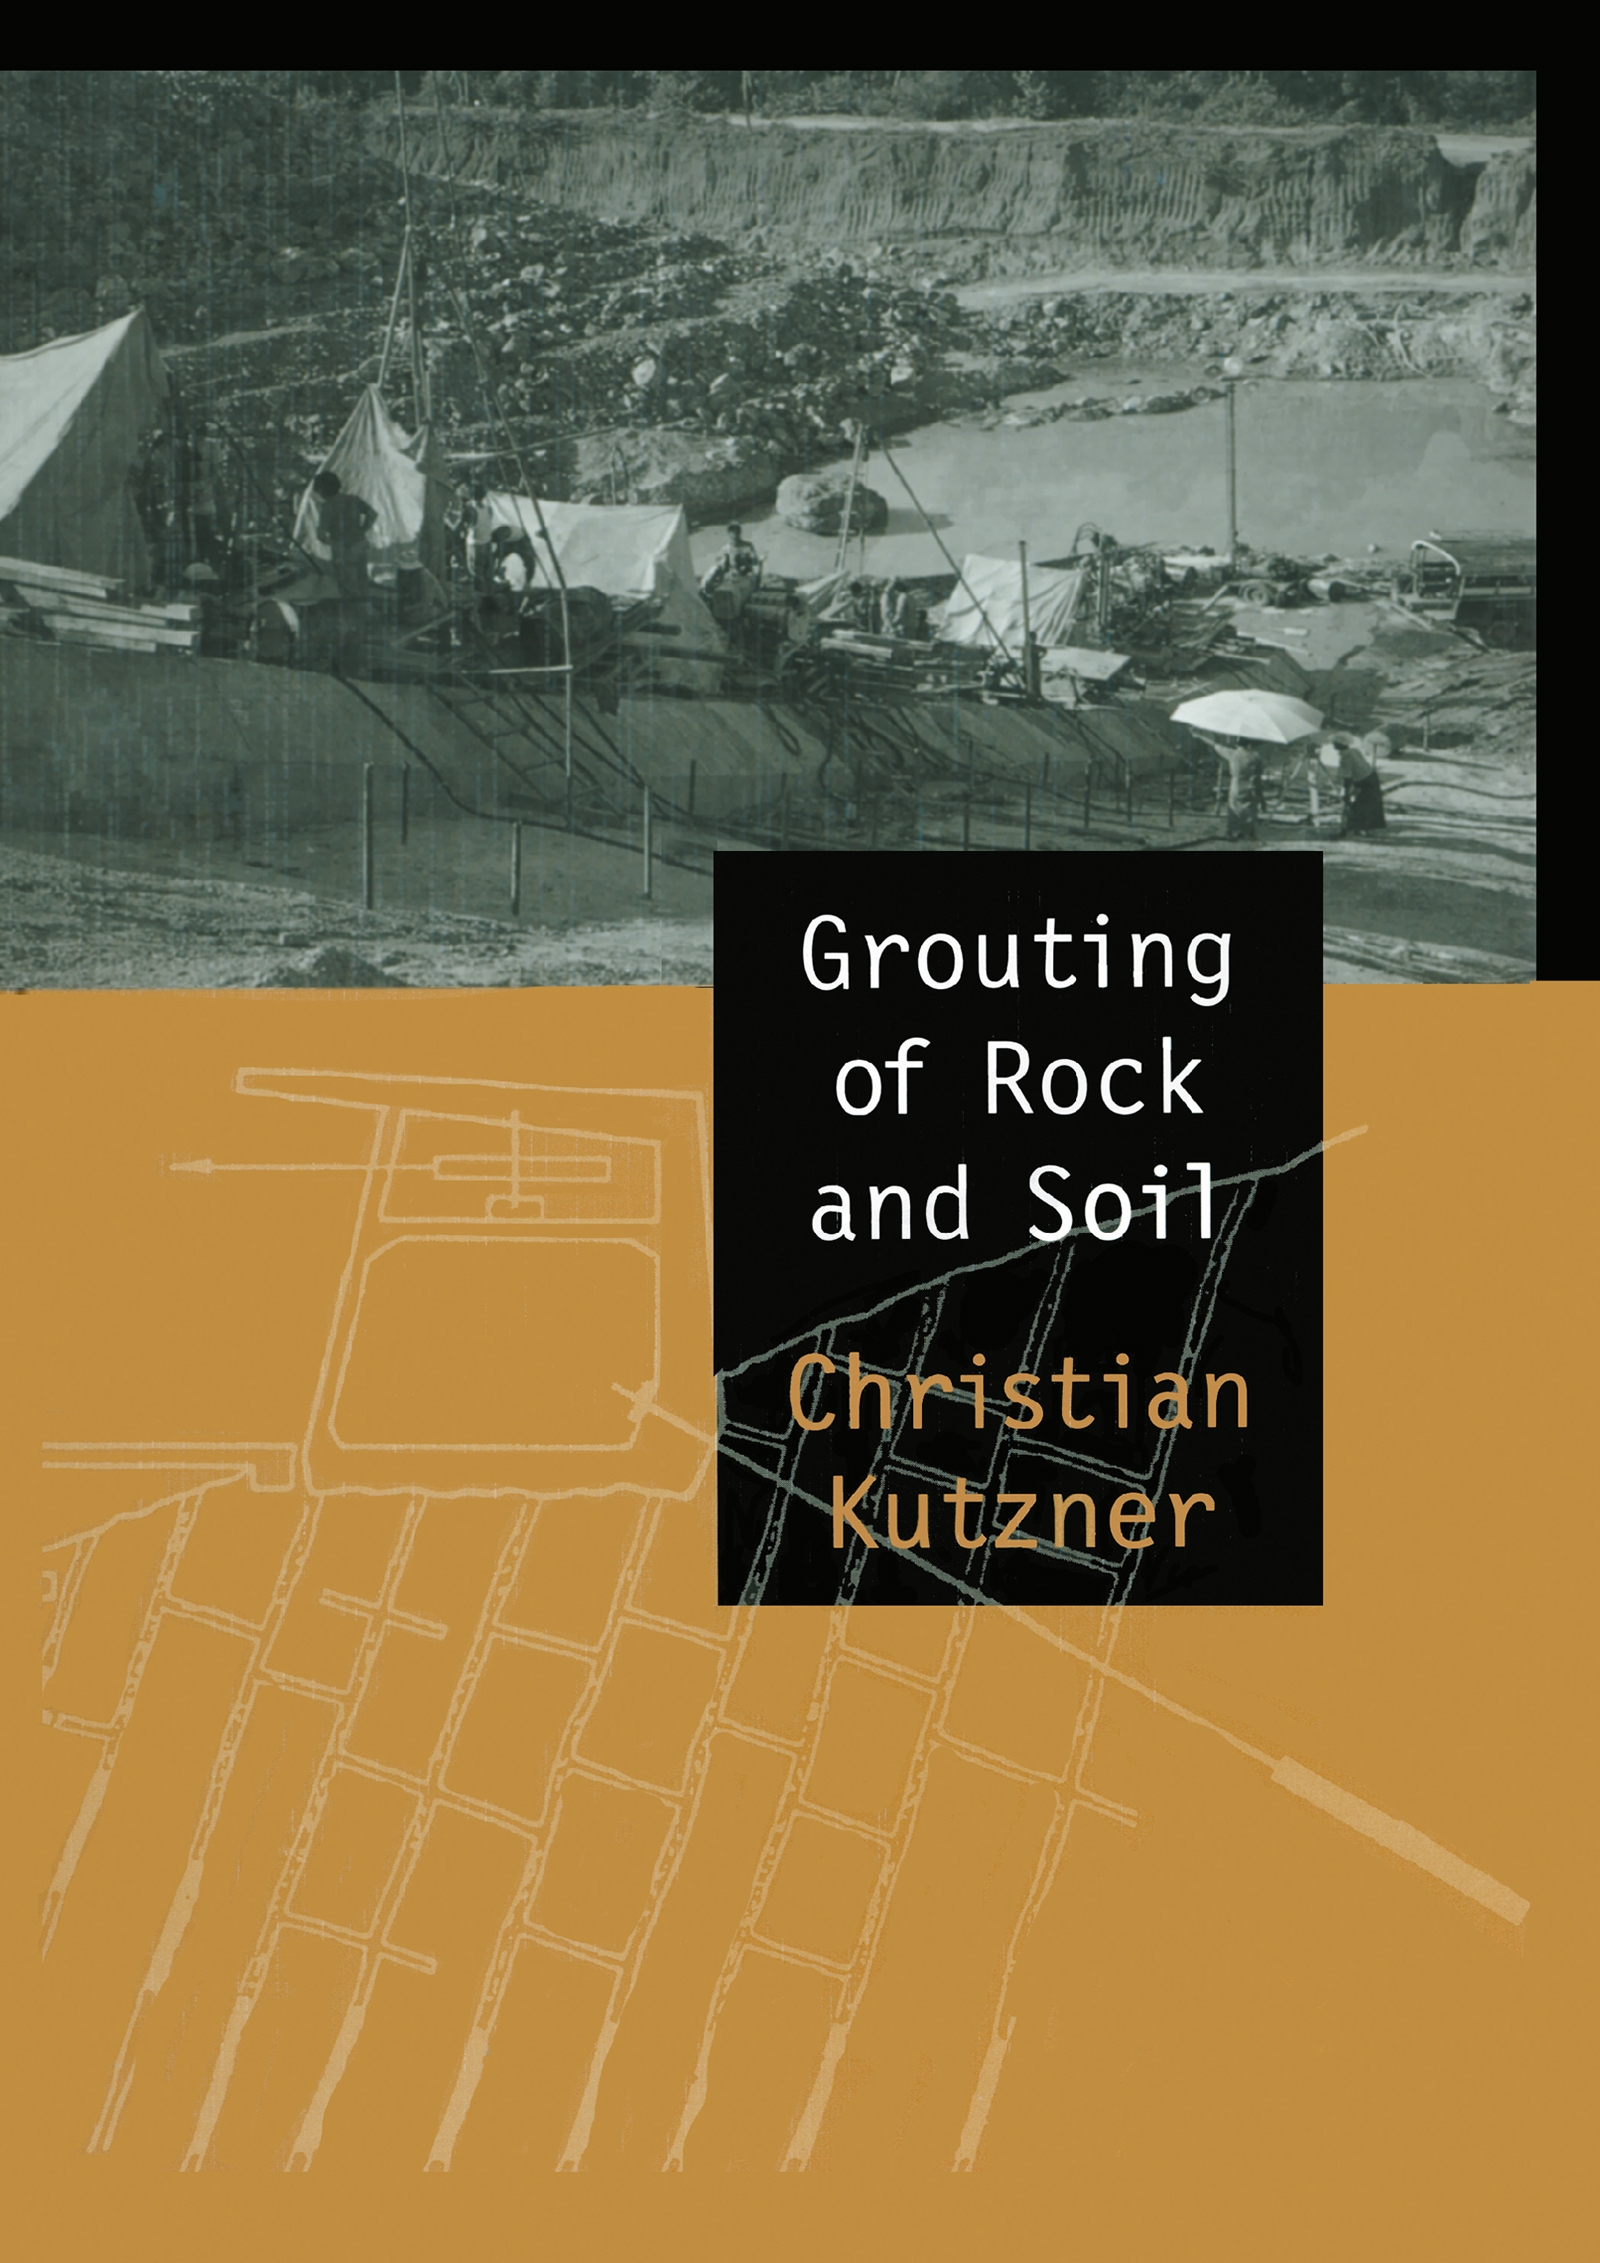 Grouting of Rock and Soil